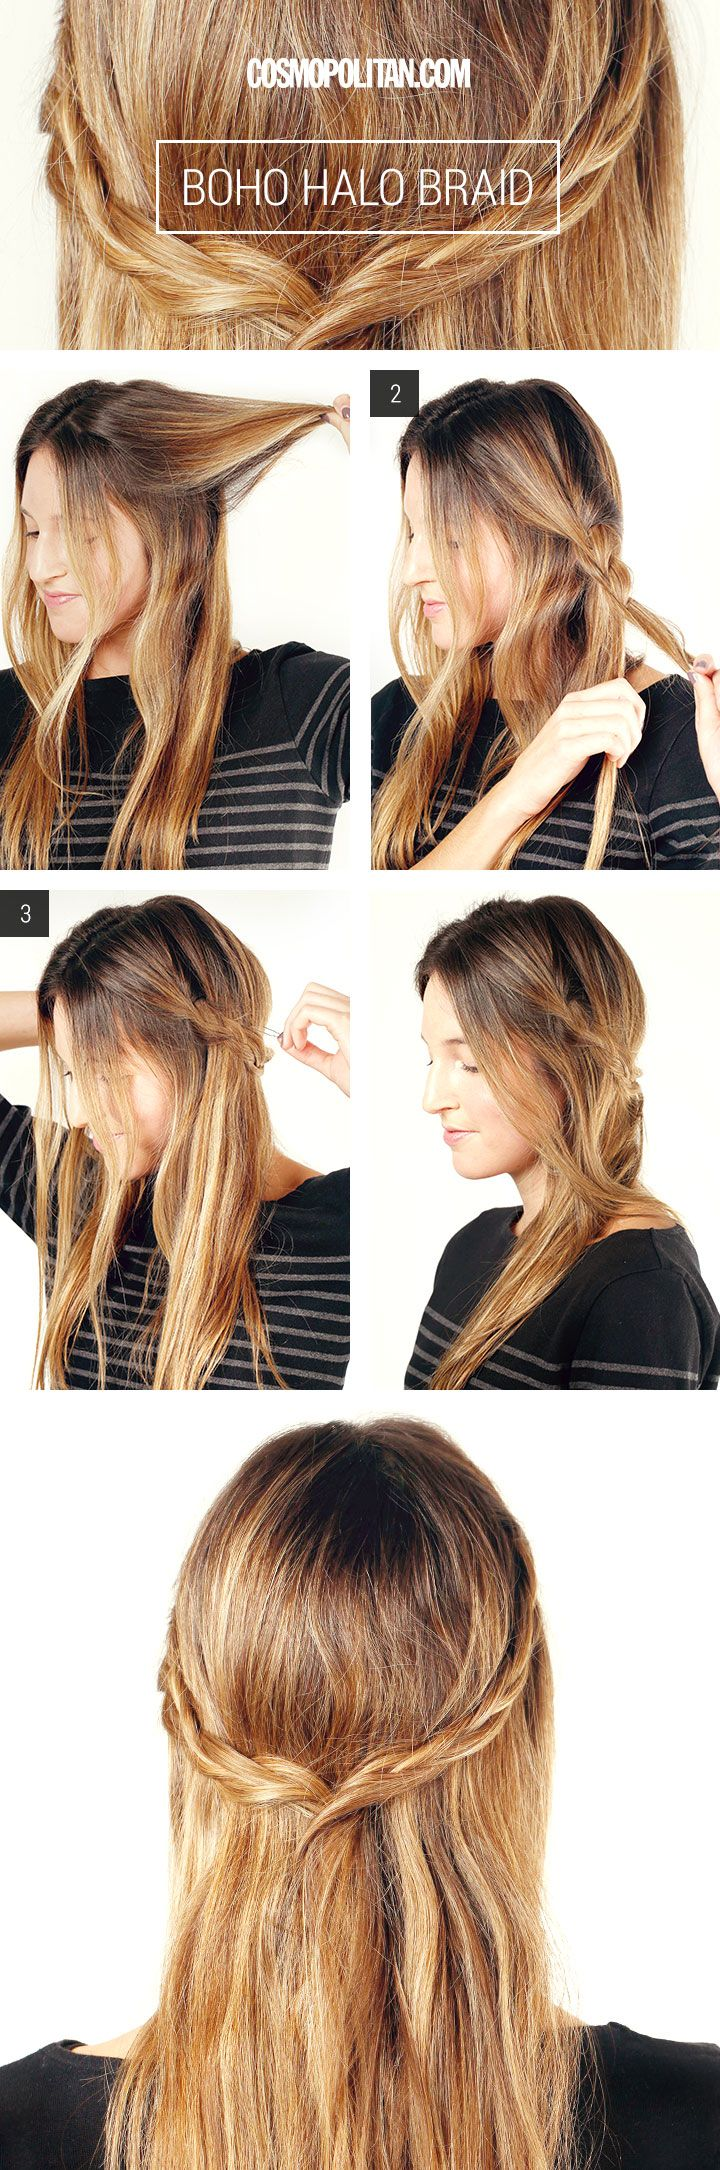 Hair How-To: the perfect Boho braid http://www.cosmopolitan.com/hairstyles-beauty/beauty-blog/bohemian-halo-braid-hair-tutorial